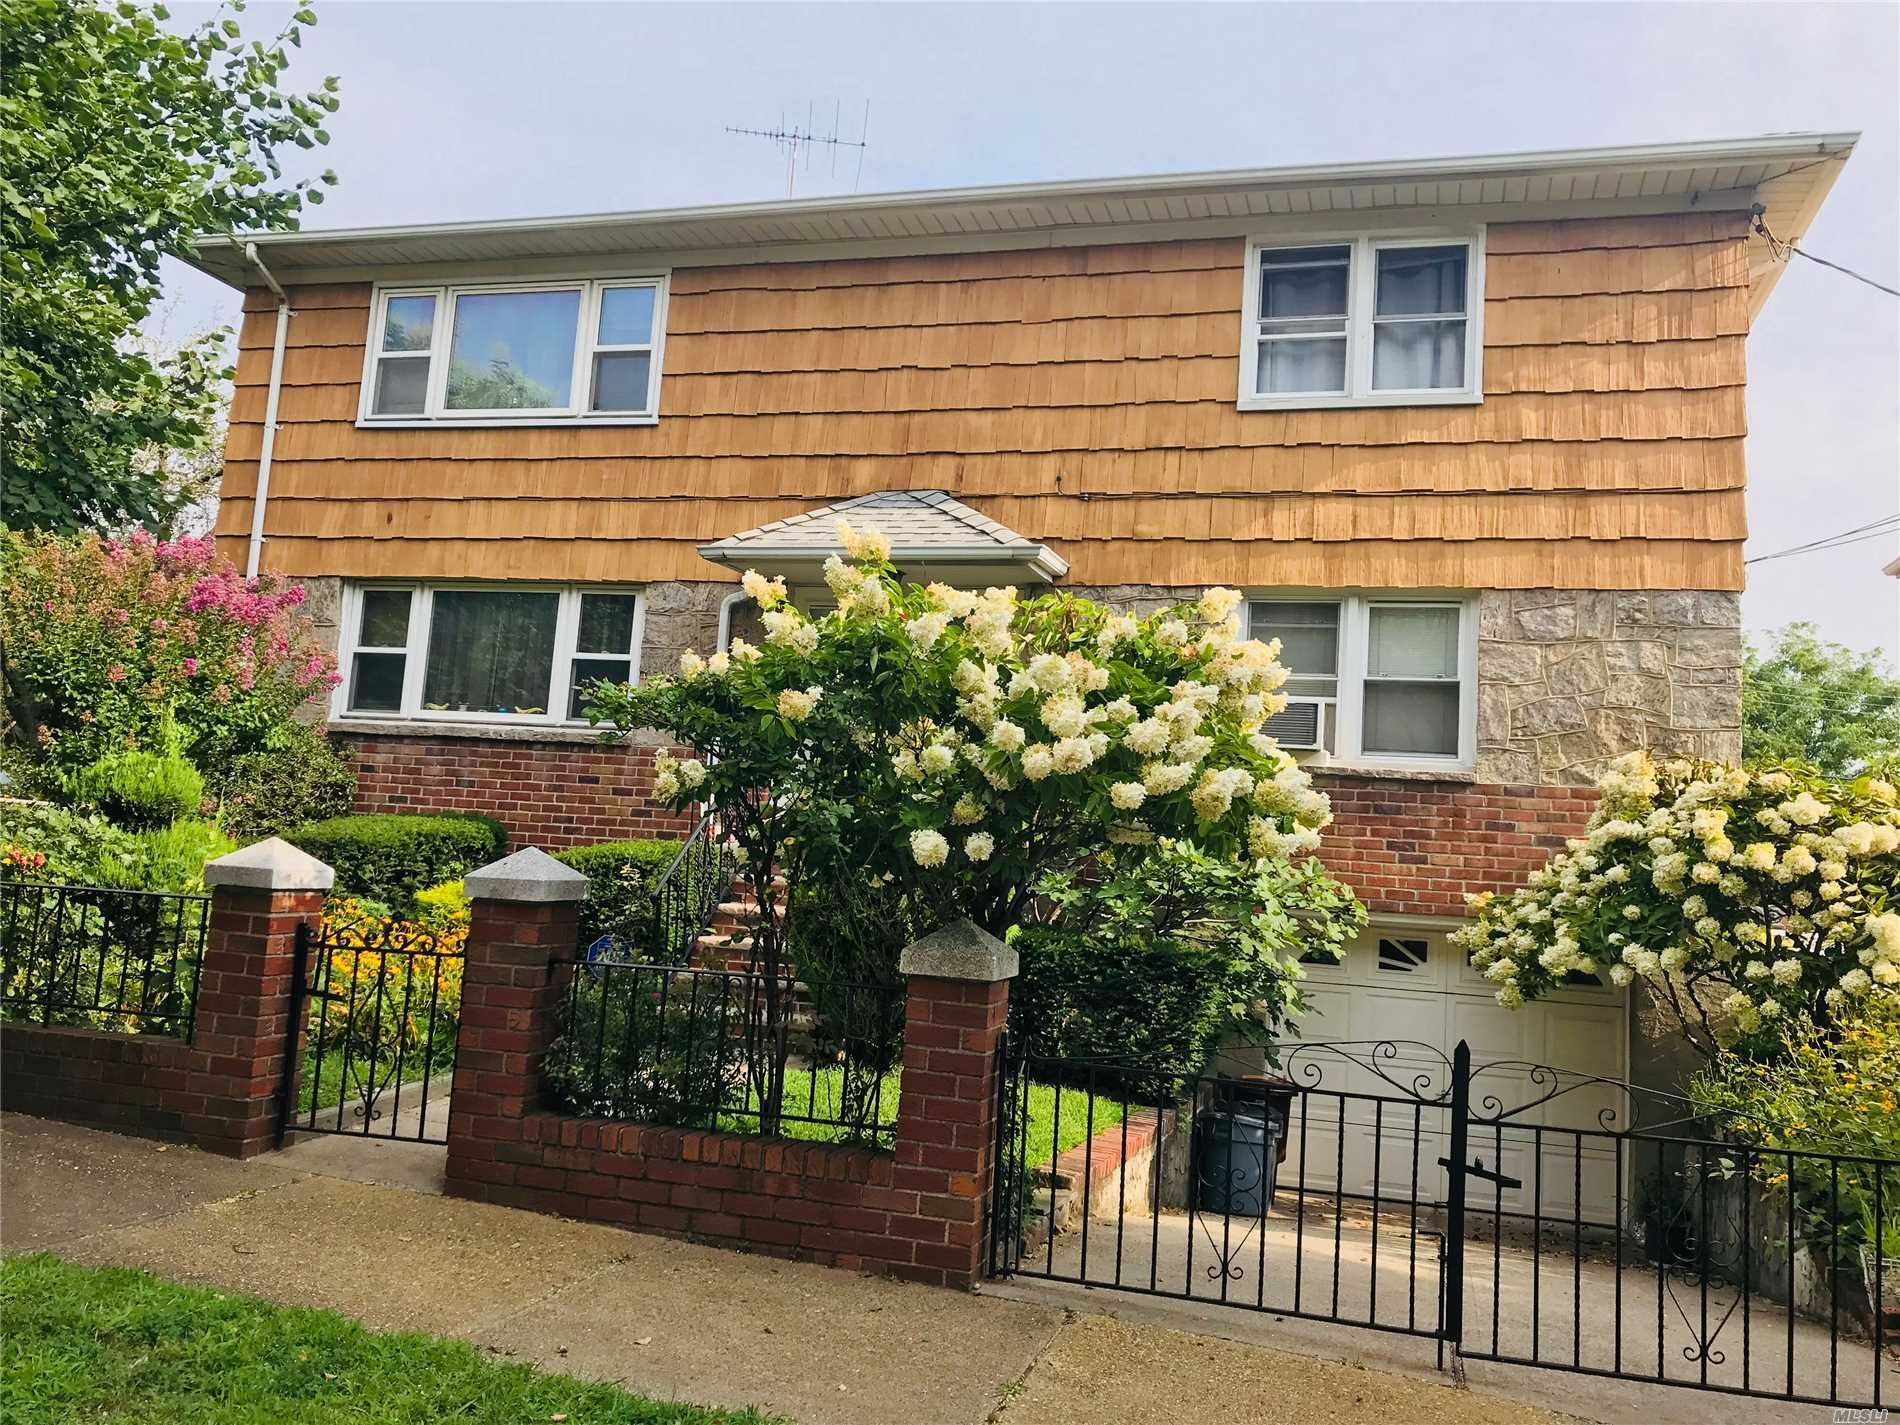 Beautiful Detached 2-Family In Hottest Areas Whitestone. Close To Shopping Mall, Highways,  Express Bus To Manhattan, Q44, Q20, Q15 To Flushing 7 Train. Great School P.S.79, Jhs185. Perfect Location For Extended Family Or Investment. House Can Be Delivered Vacant At Closing.